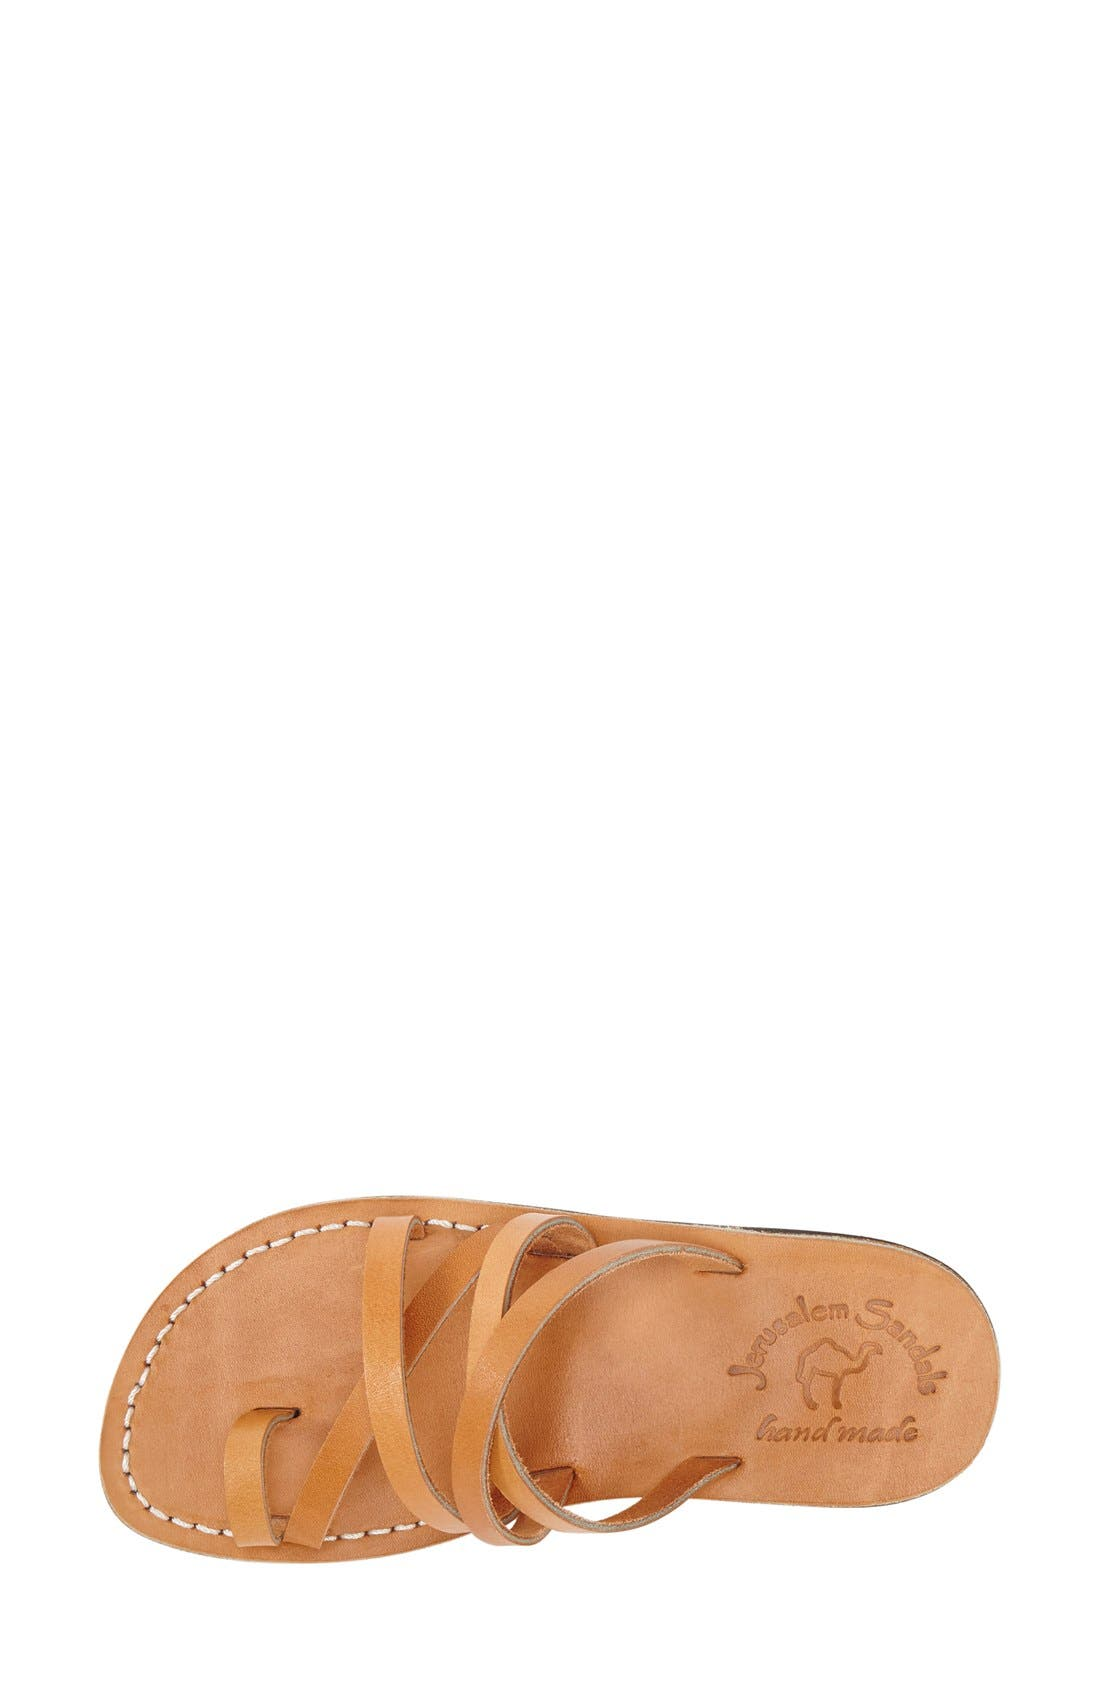 Alternate Image 3  - Jerusalem Sandals 'Ariel' Strappy Slide Sandal (Women)